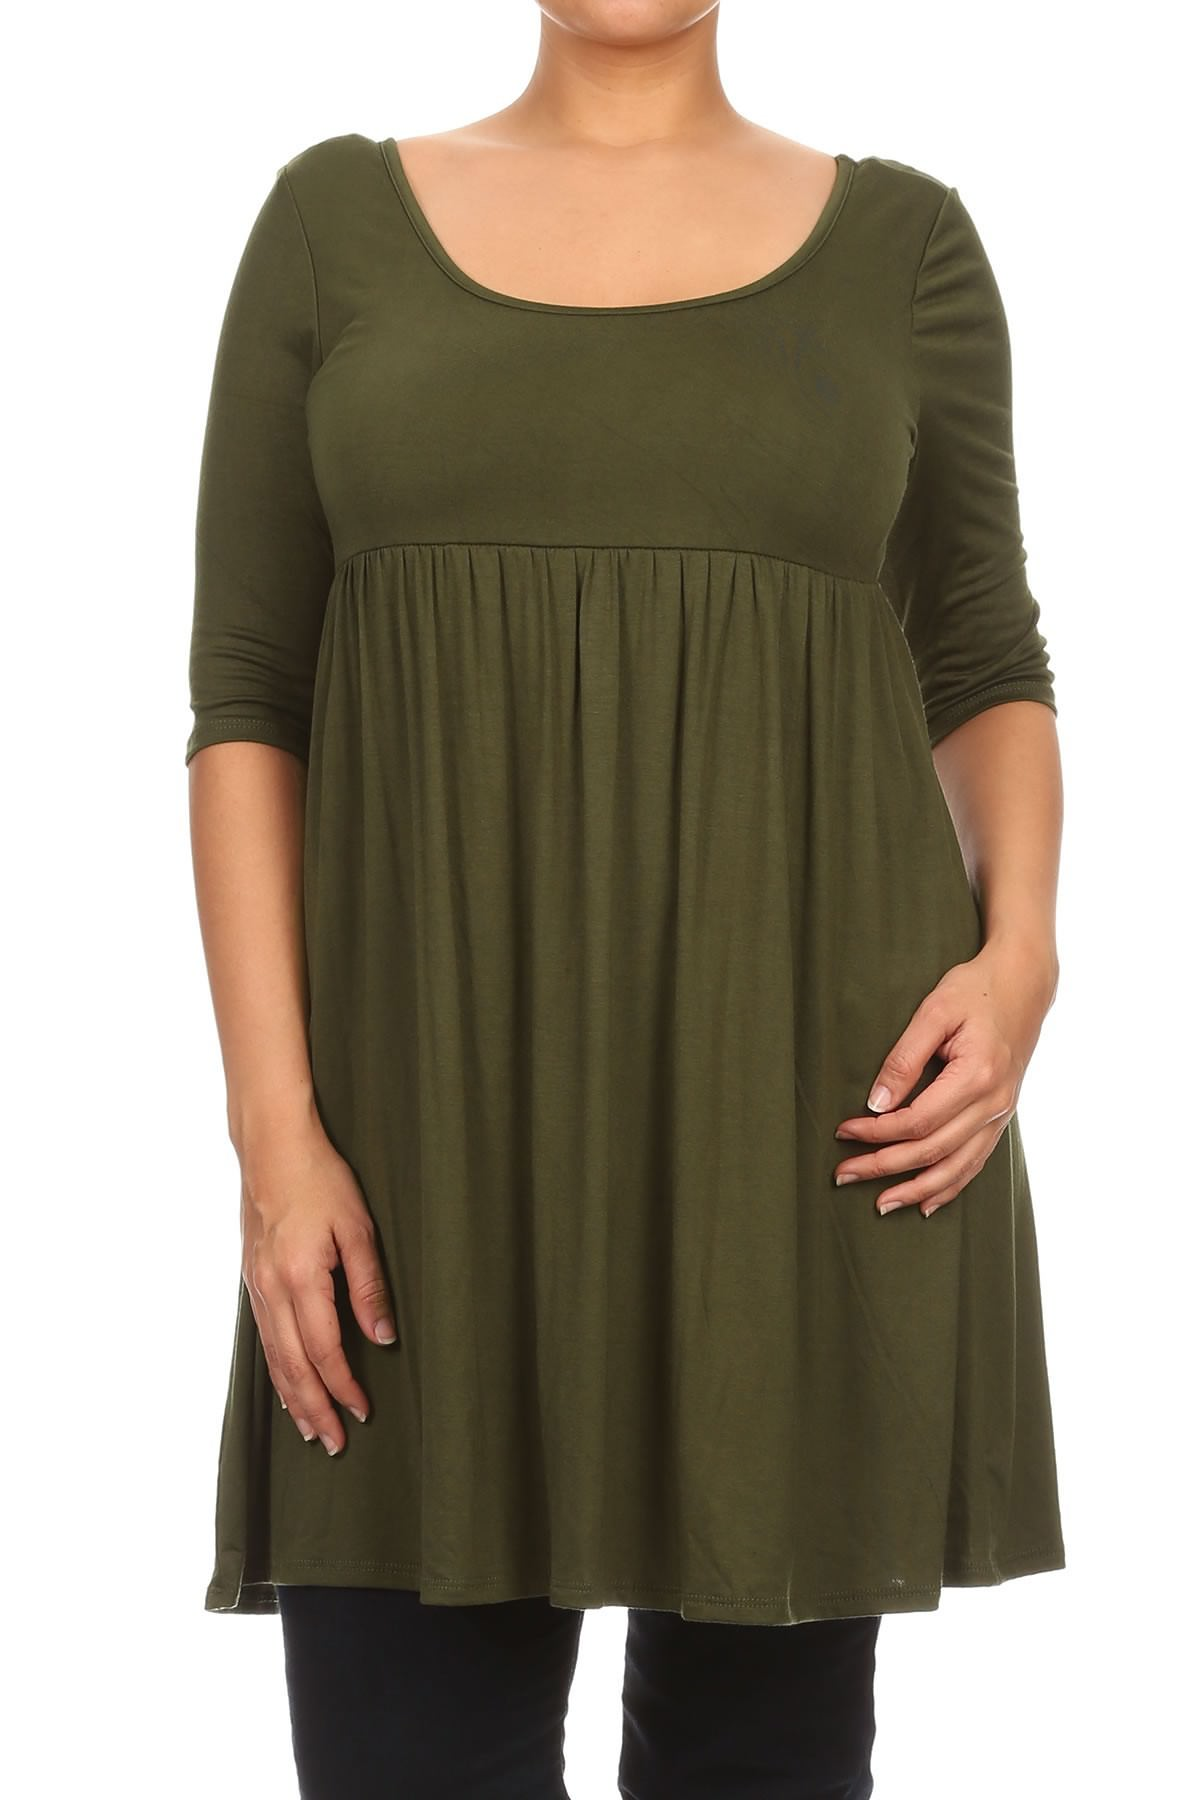 Women Plus Size Half Sleeve Solid Babydoll Casual Tunic Top Dress Olive XL (D240 SD)